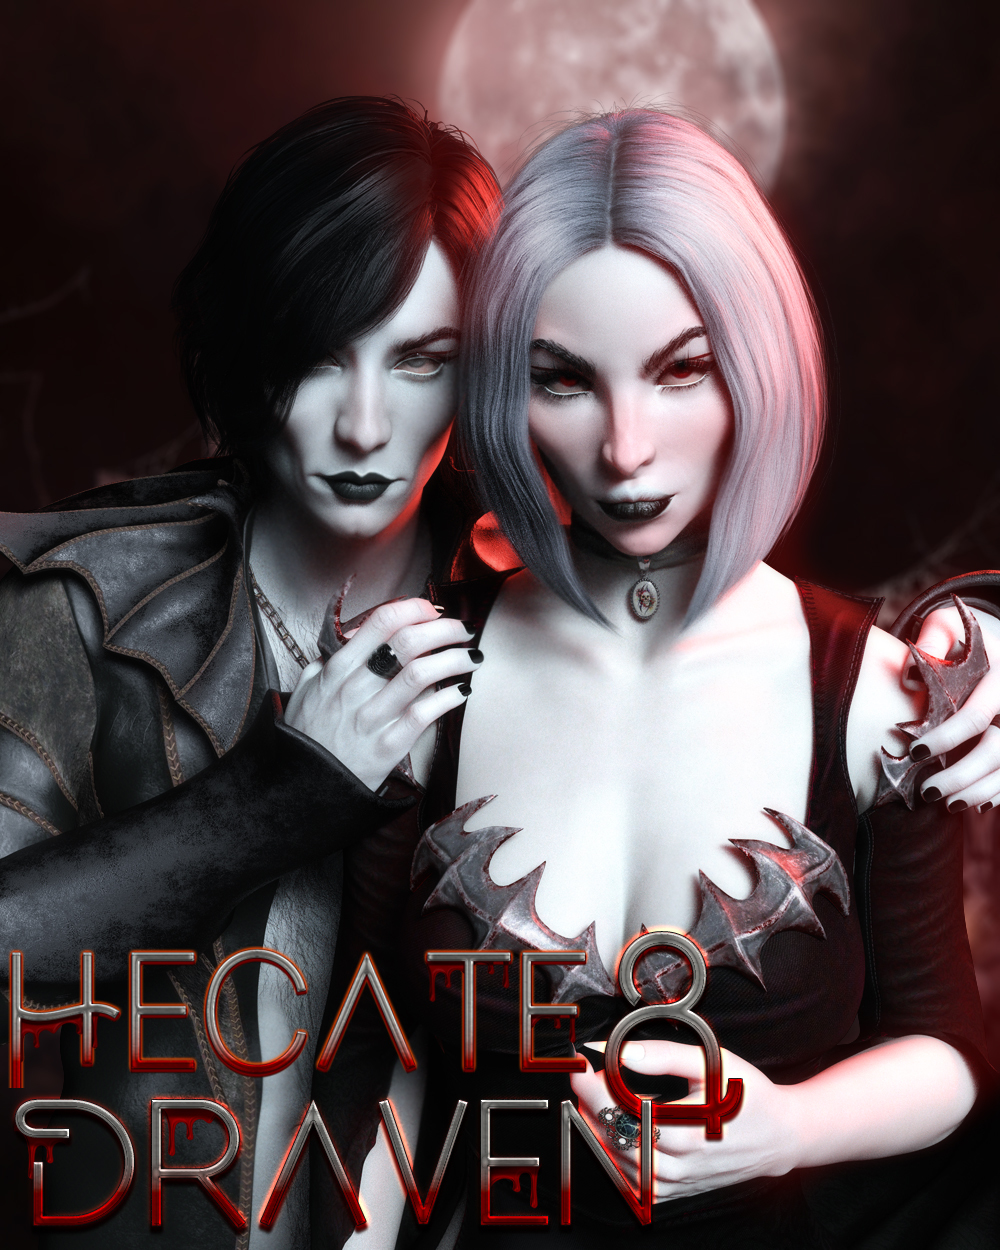 Draven and Hecate Bundle G8M/G8F by TwiztedMetal